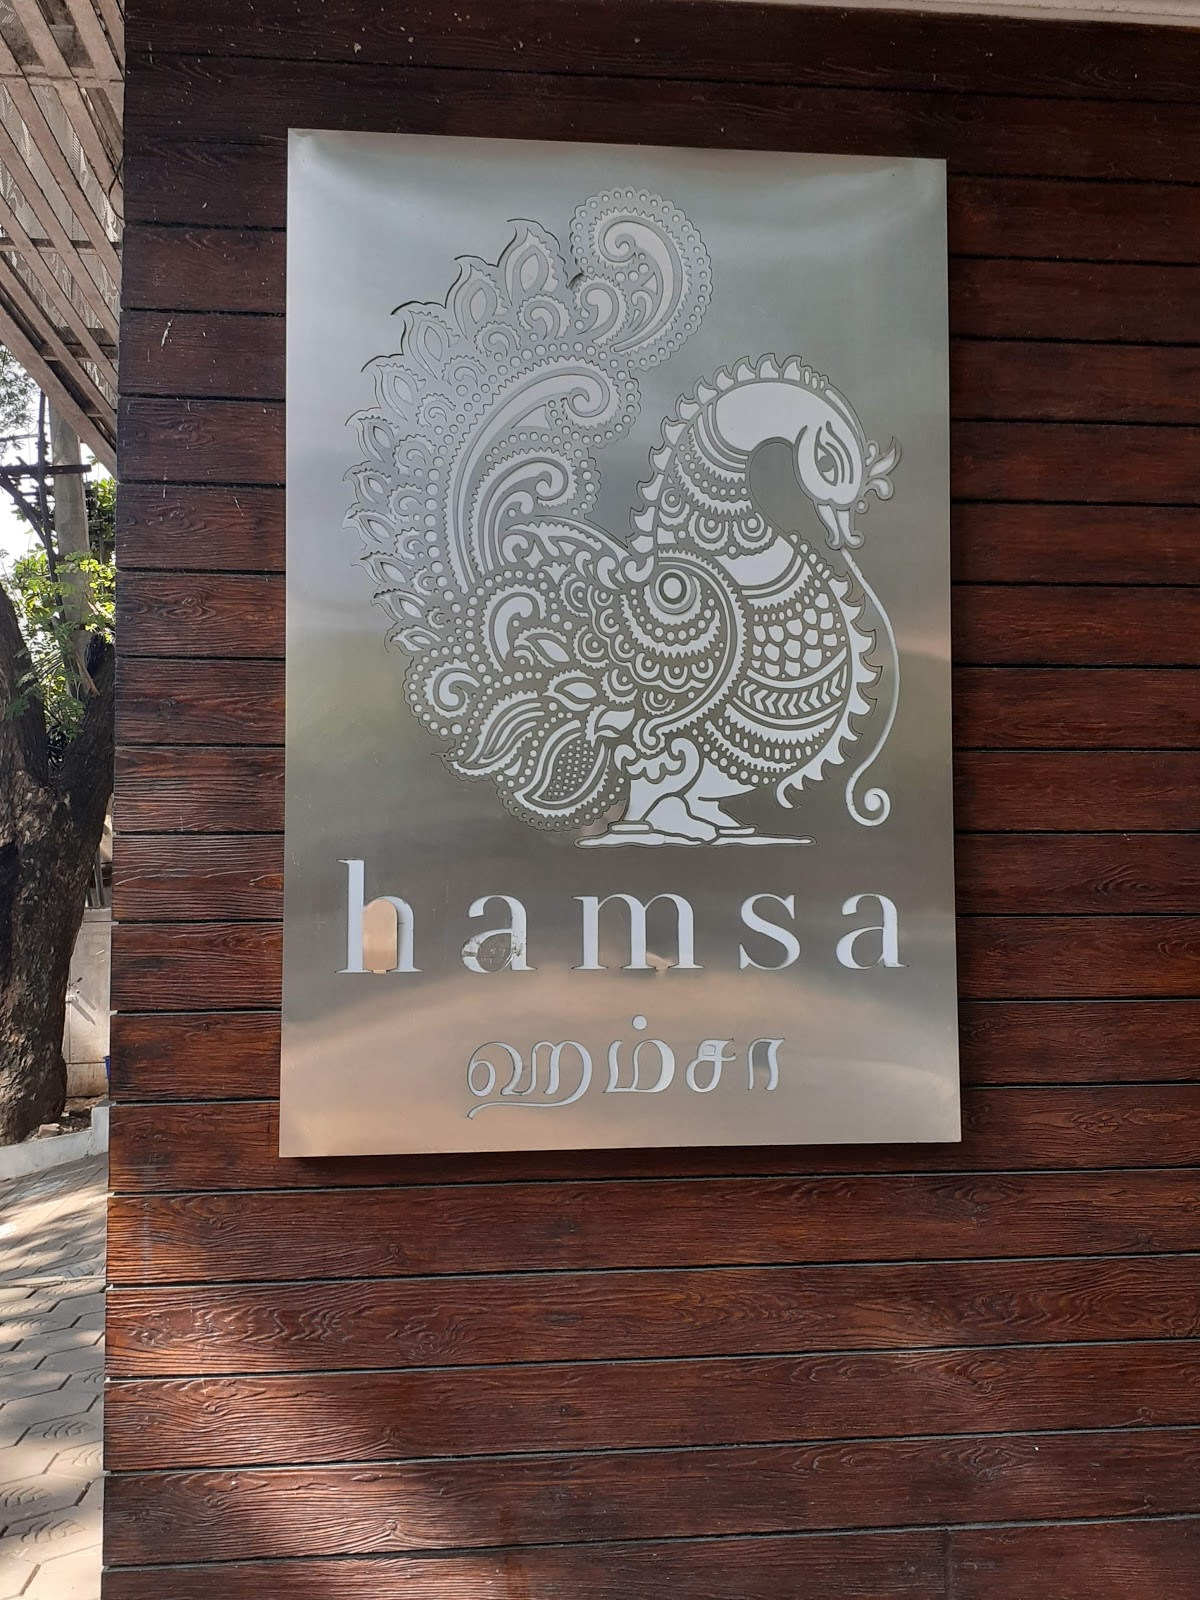 Utsav at Hamsa, till 29th Oct…